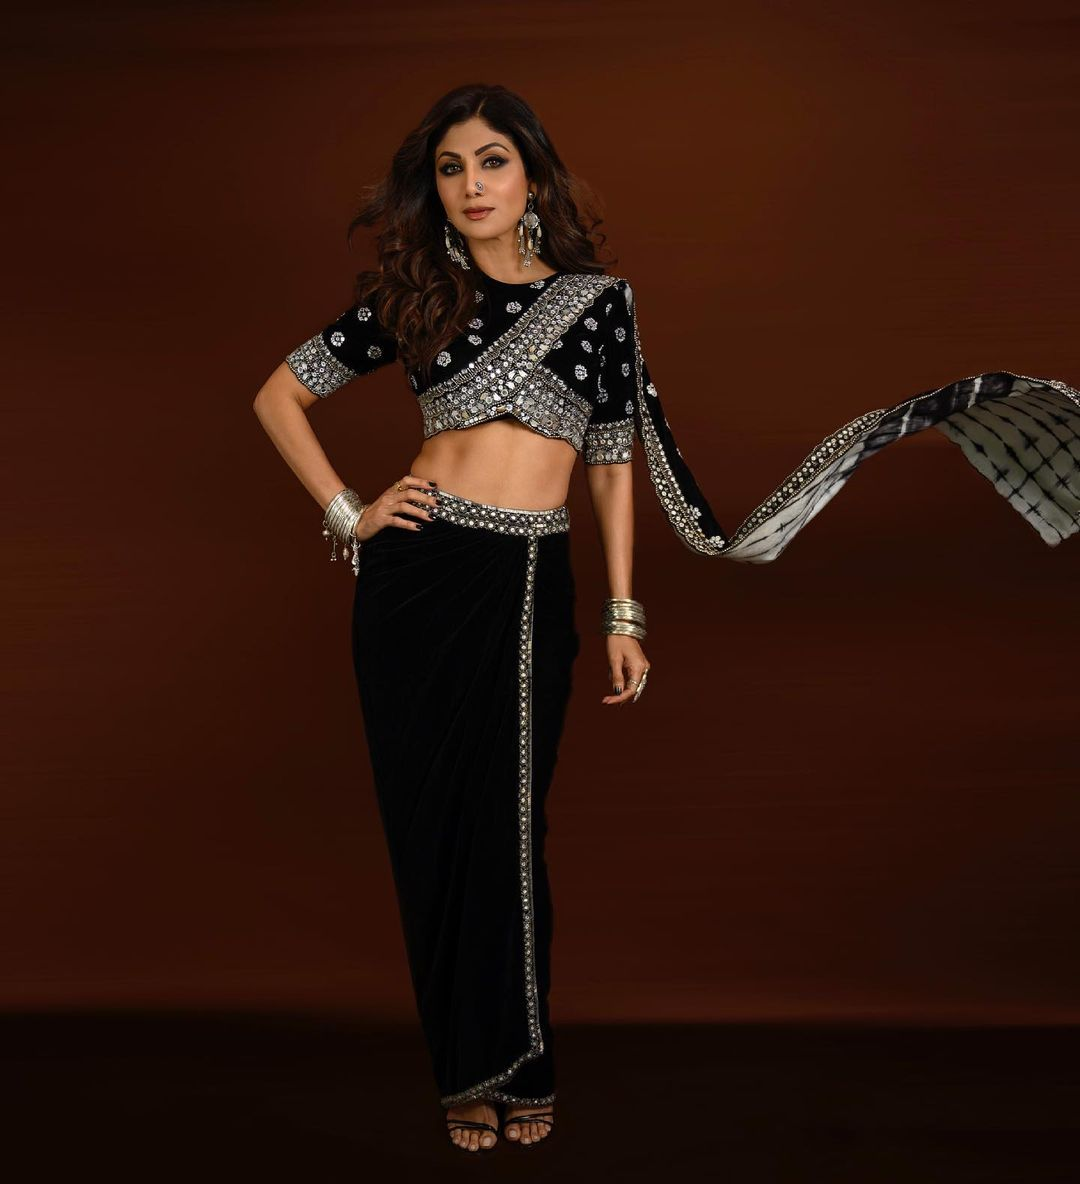 Shilpa Shetty Kundra's latest black saree look proves that she is the OG style and fitness queen of . Scroll ahead as we roundup some of her best style moments of the recent past. (Image: Instagram)